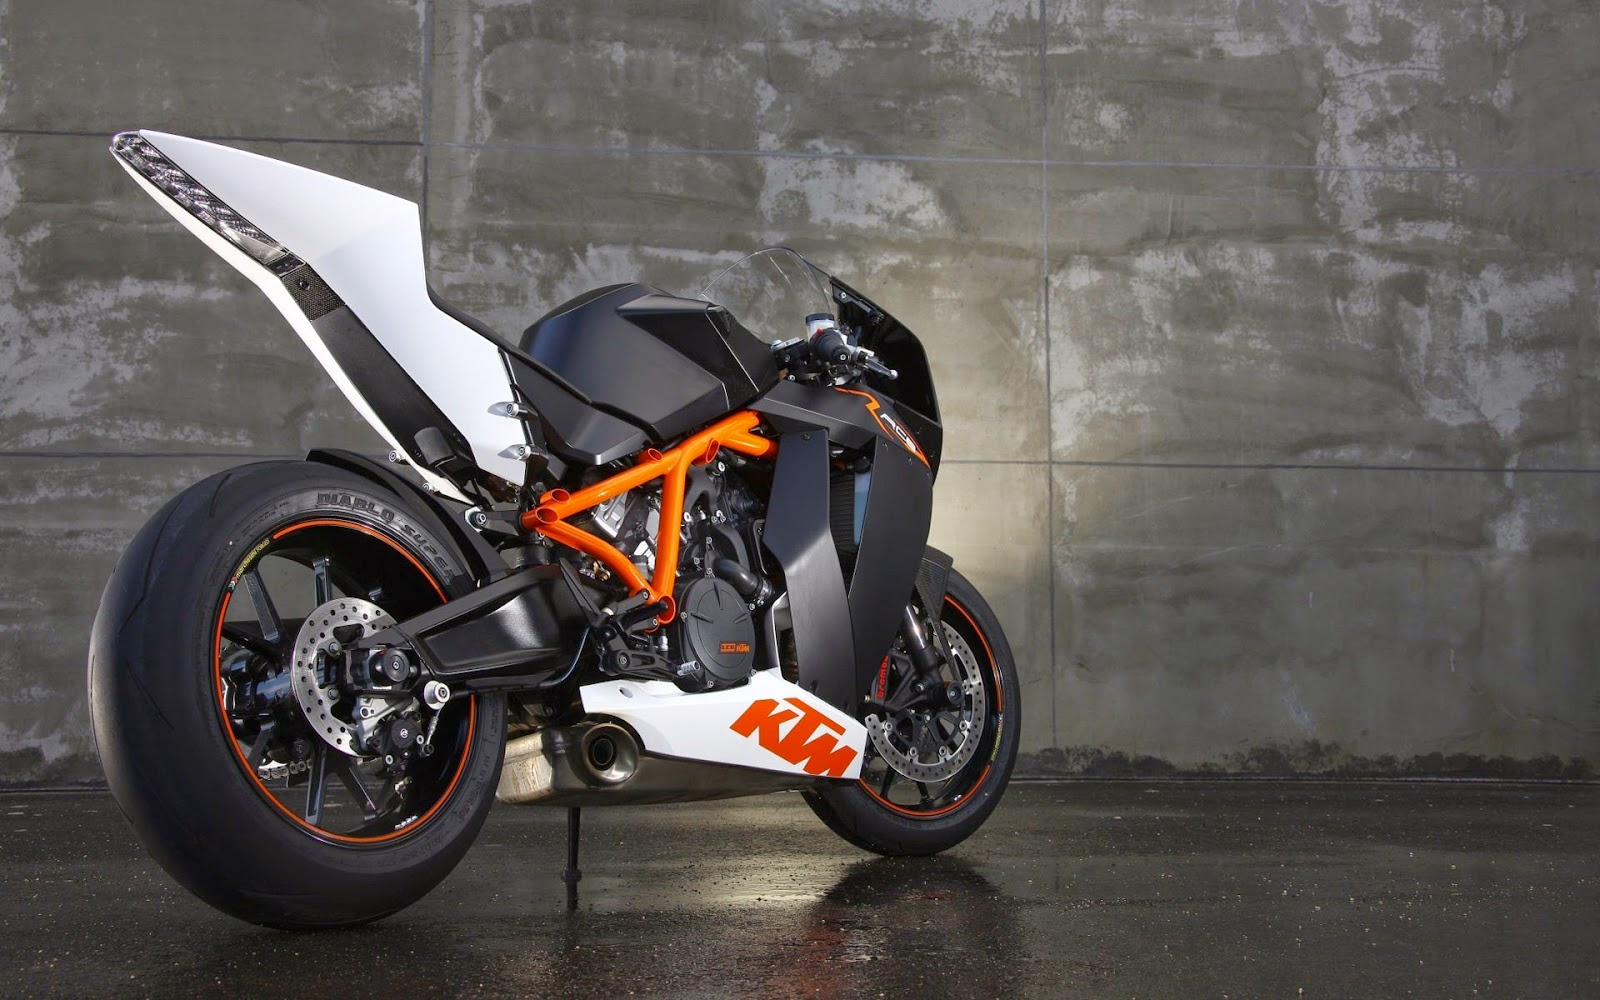 Global Pictures Gallery Bikes Full Hd Wallpaers